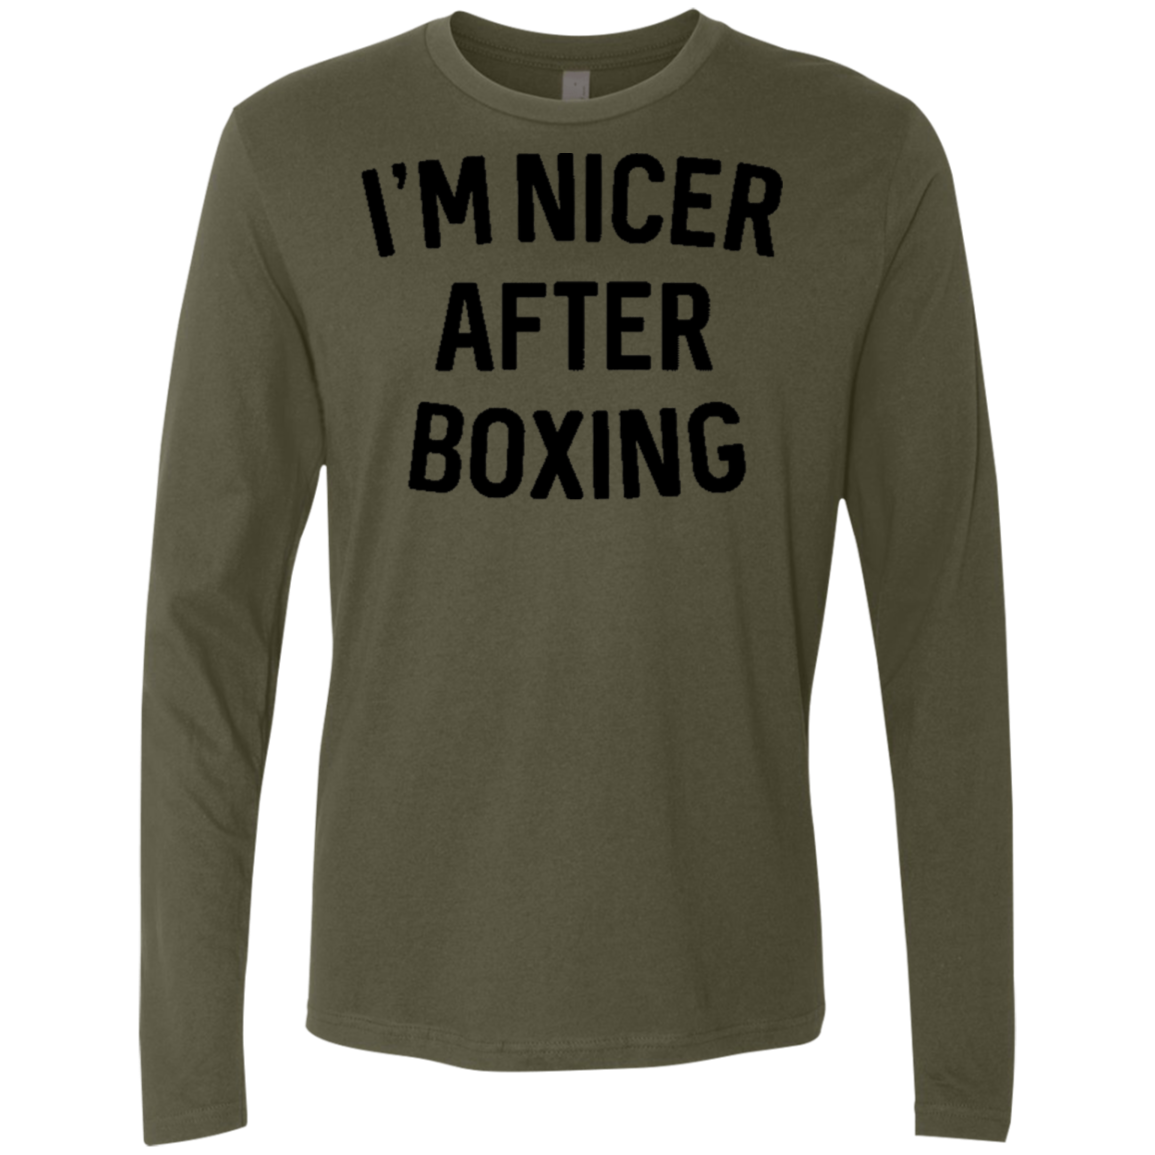 I'm Nicer After Box Men's Long Sleeve Tee